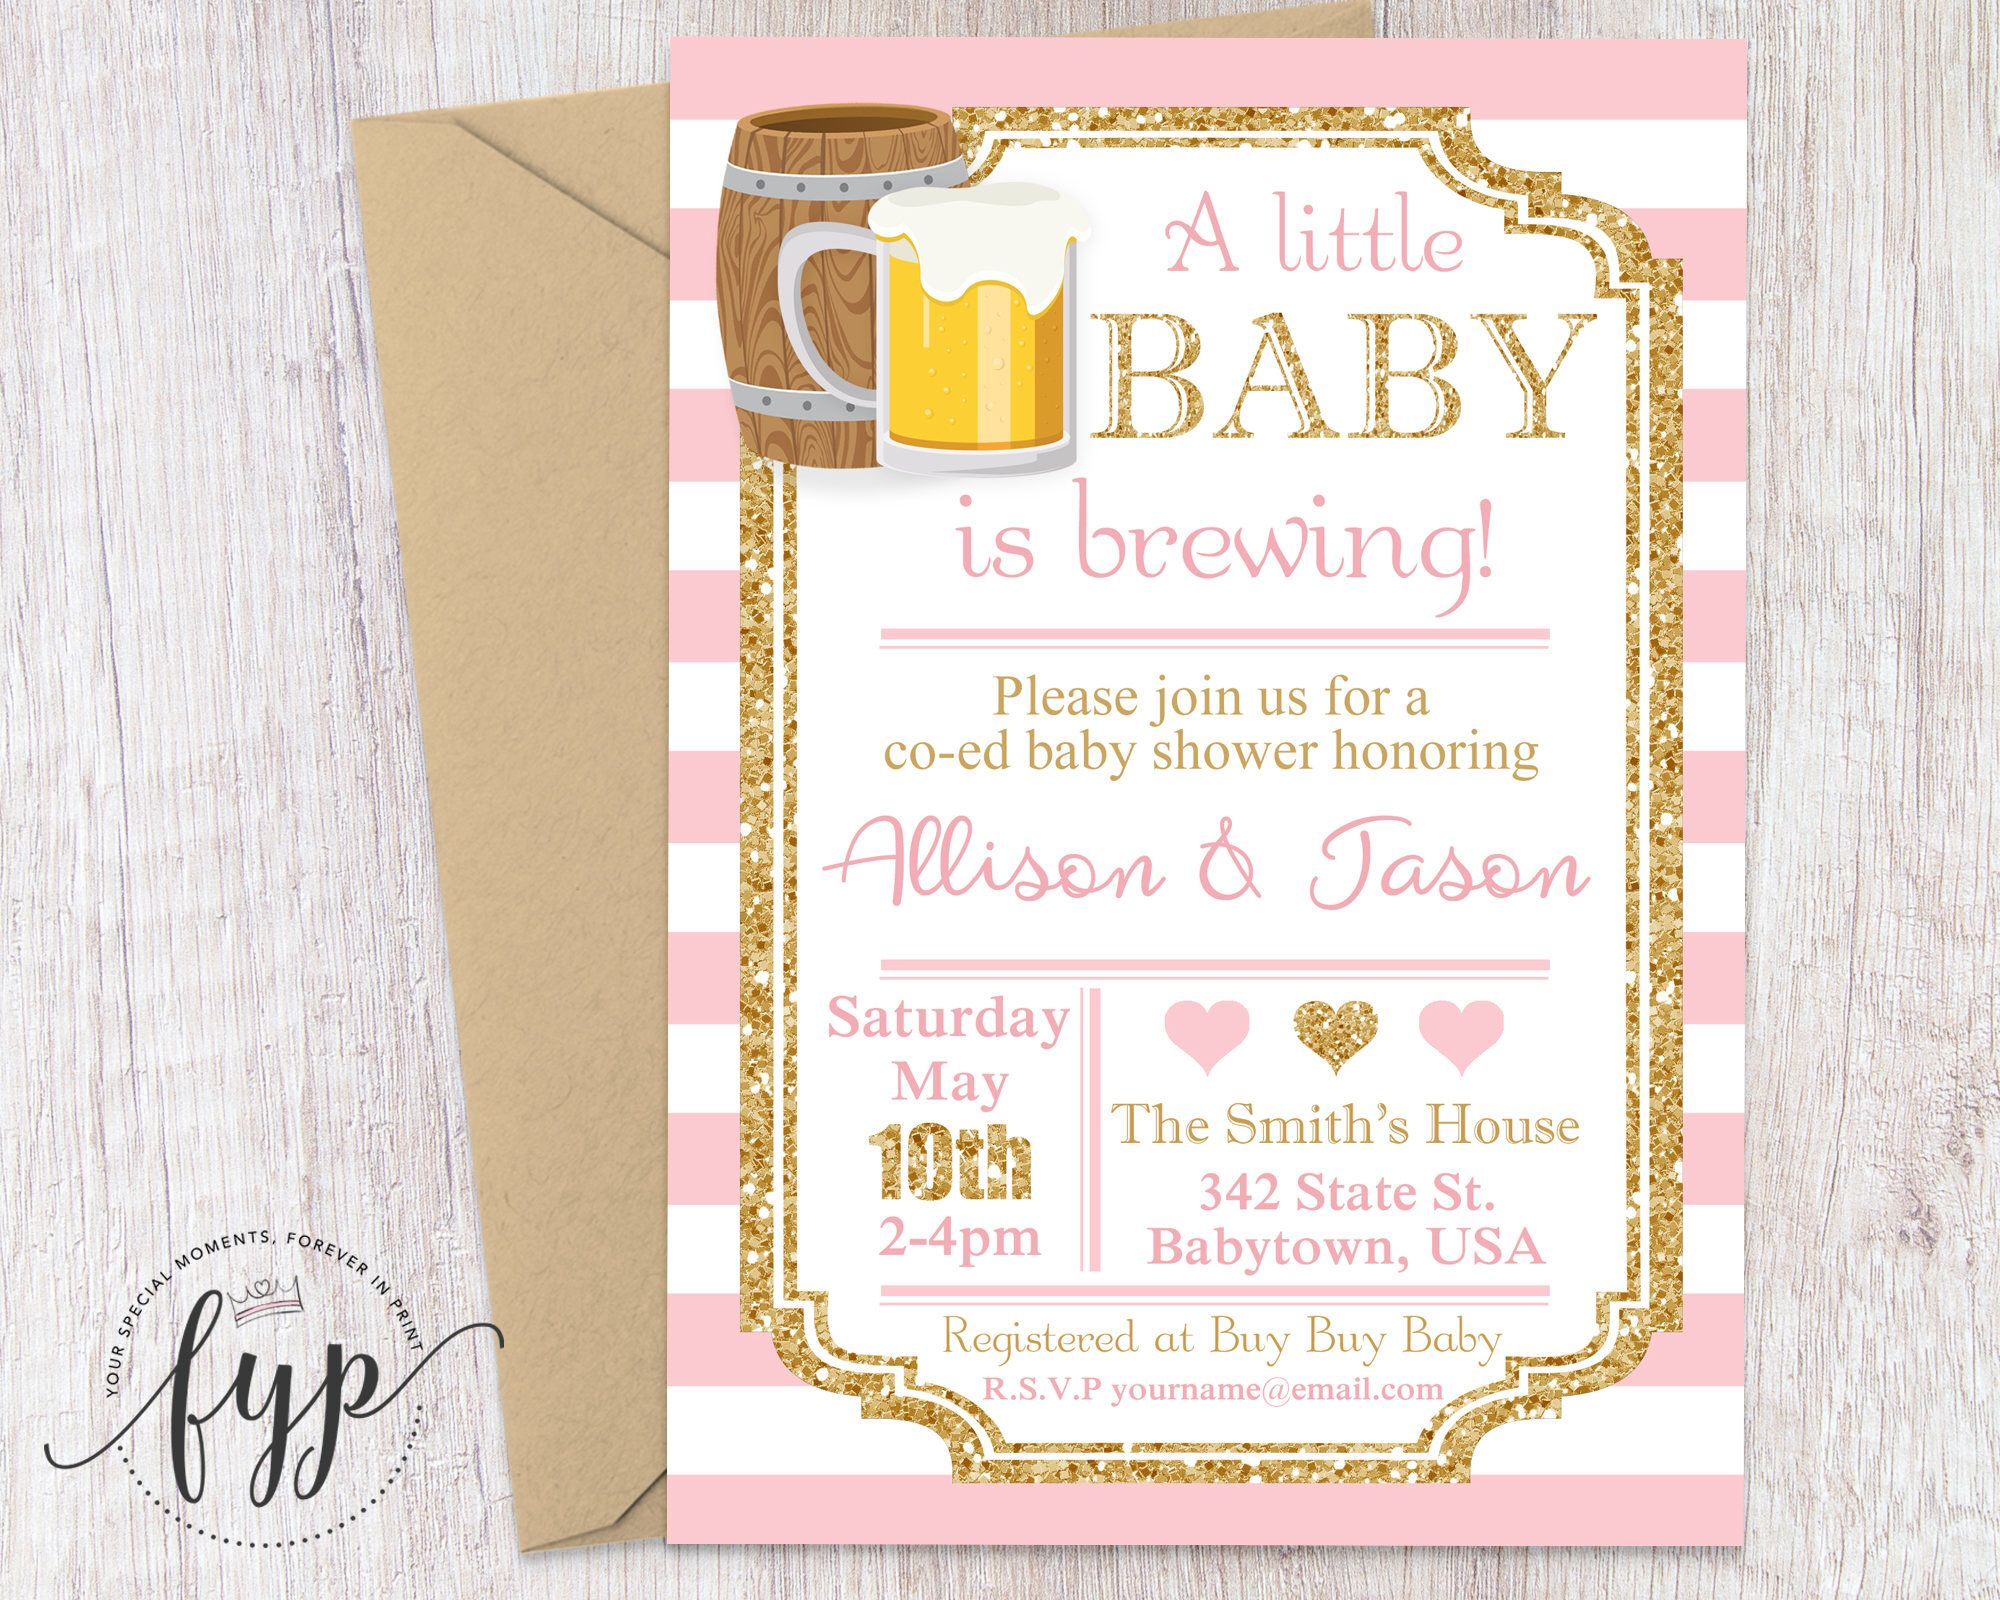 Coed Baby Shower Invitation, Beer Baby Shower Invitation, Baby Is ...